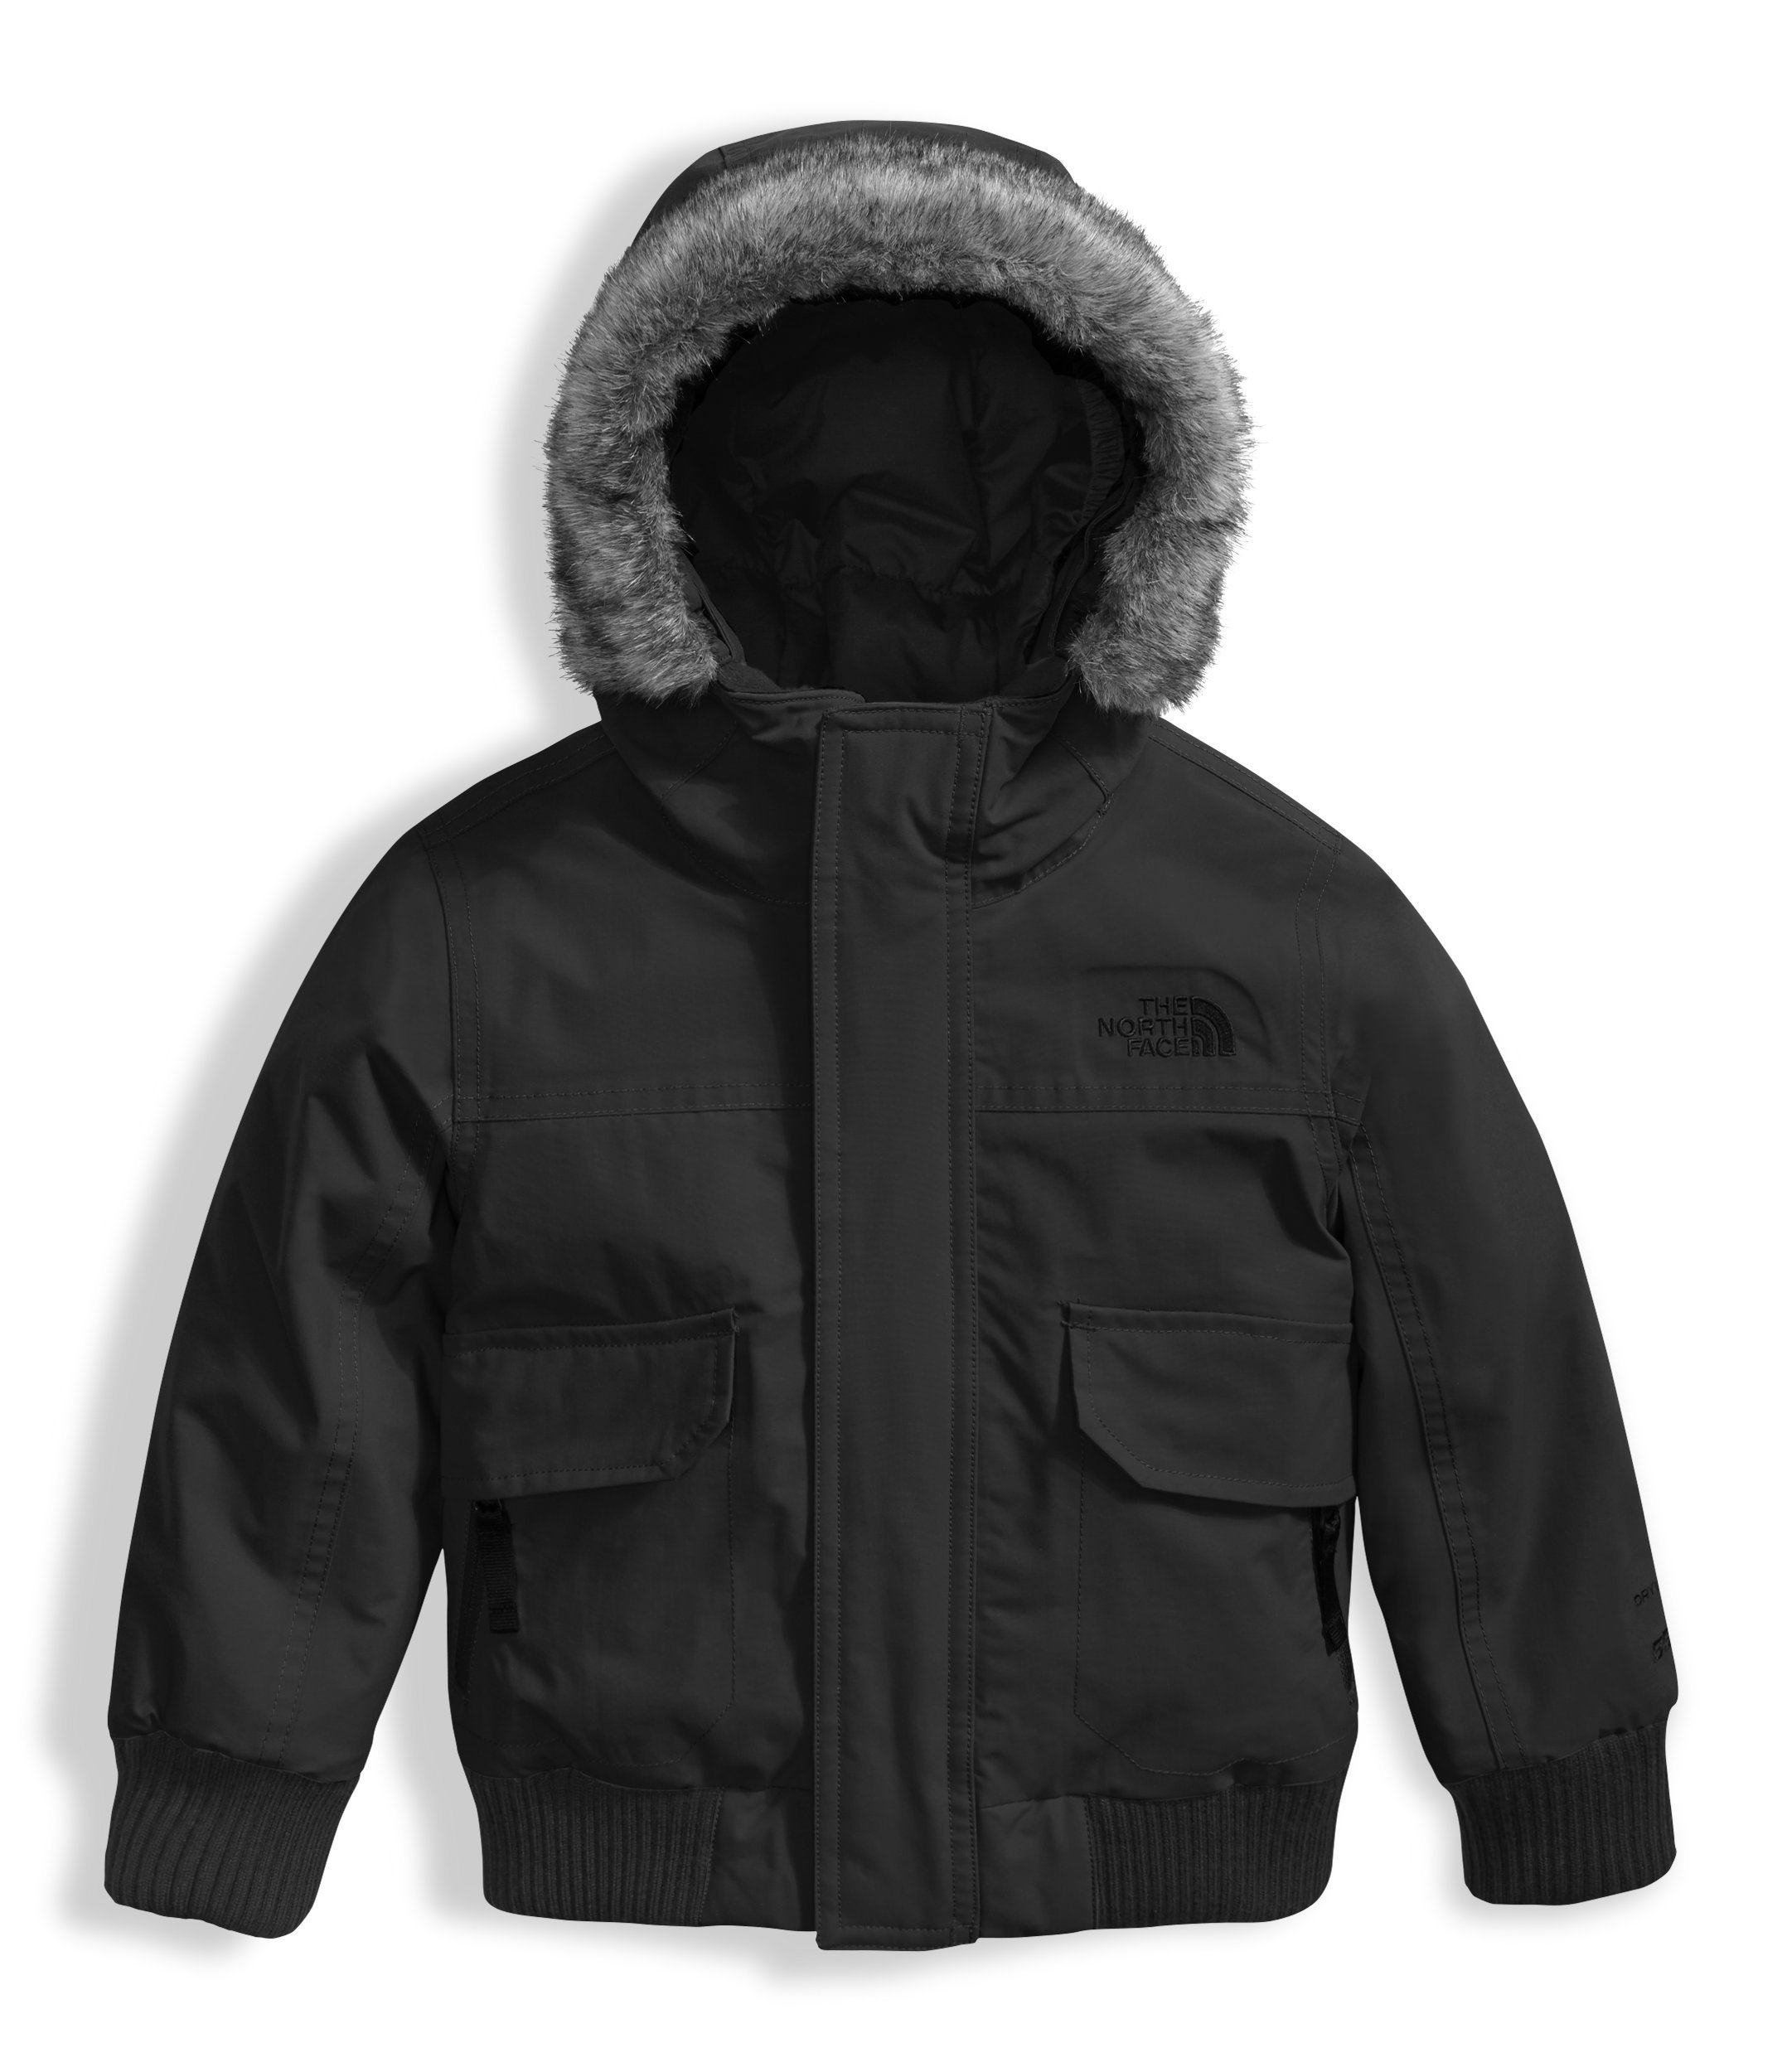 The North Face Toddler Boys Gotham Down Jacket Black (5 Toddler) by The North Face